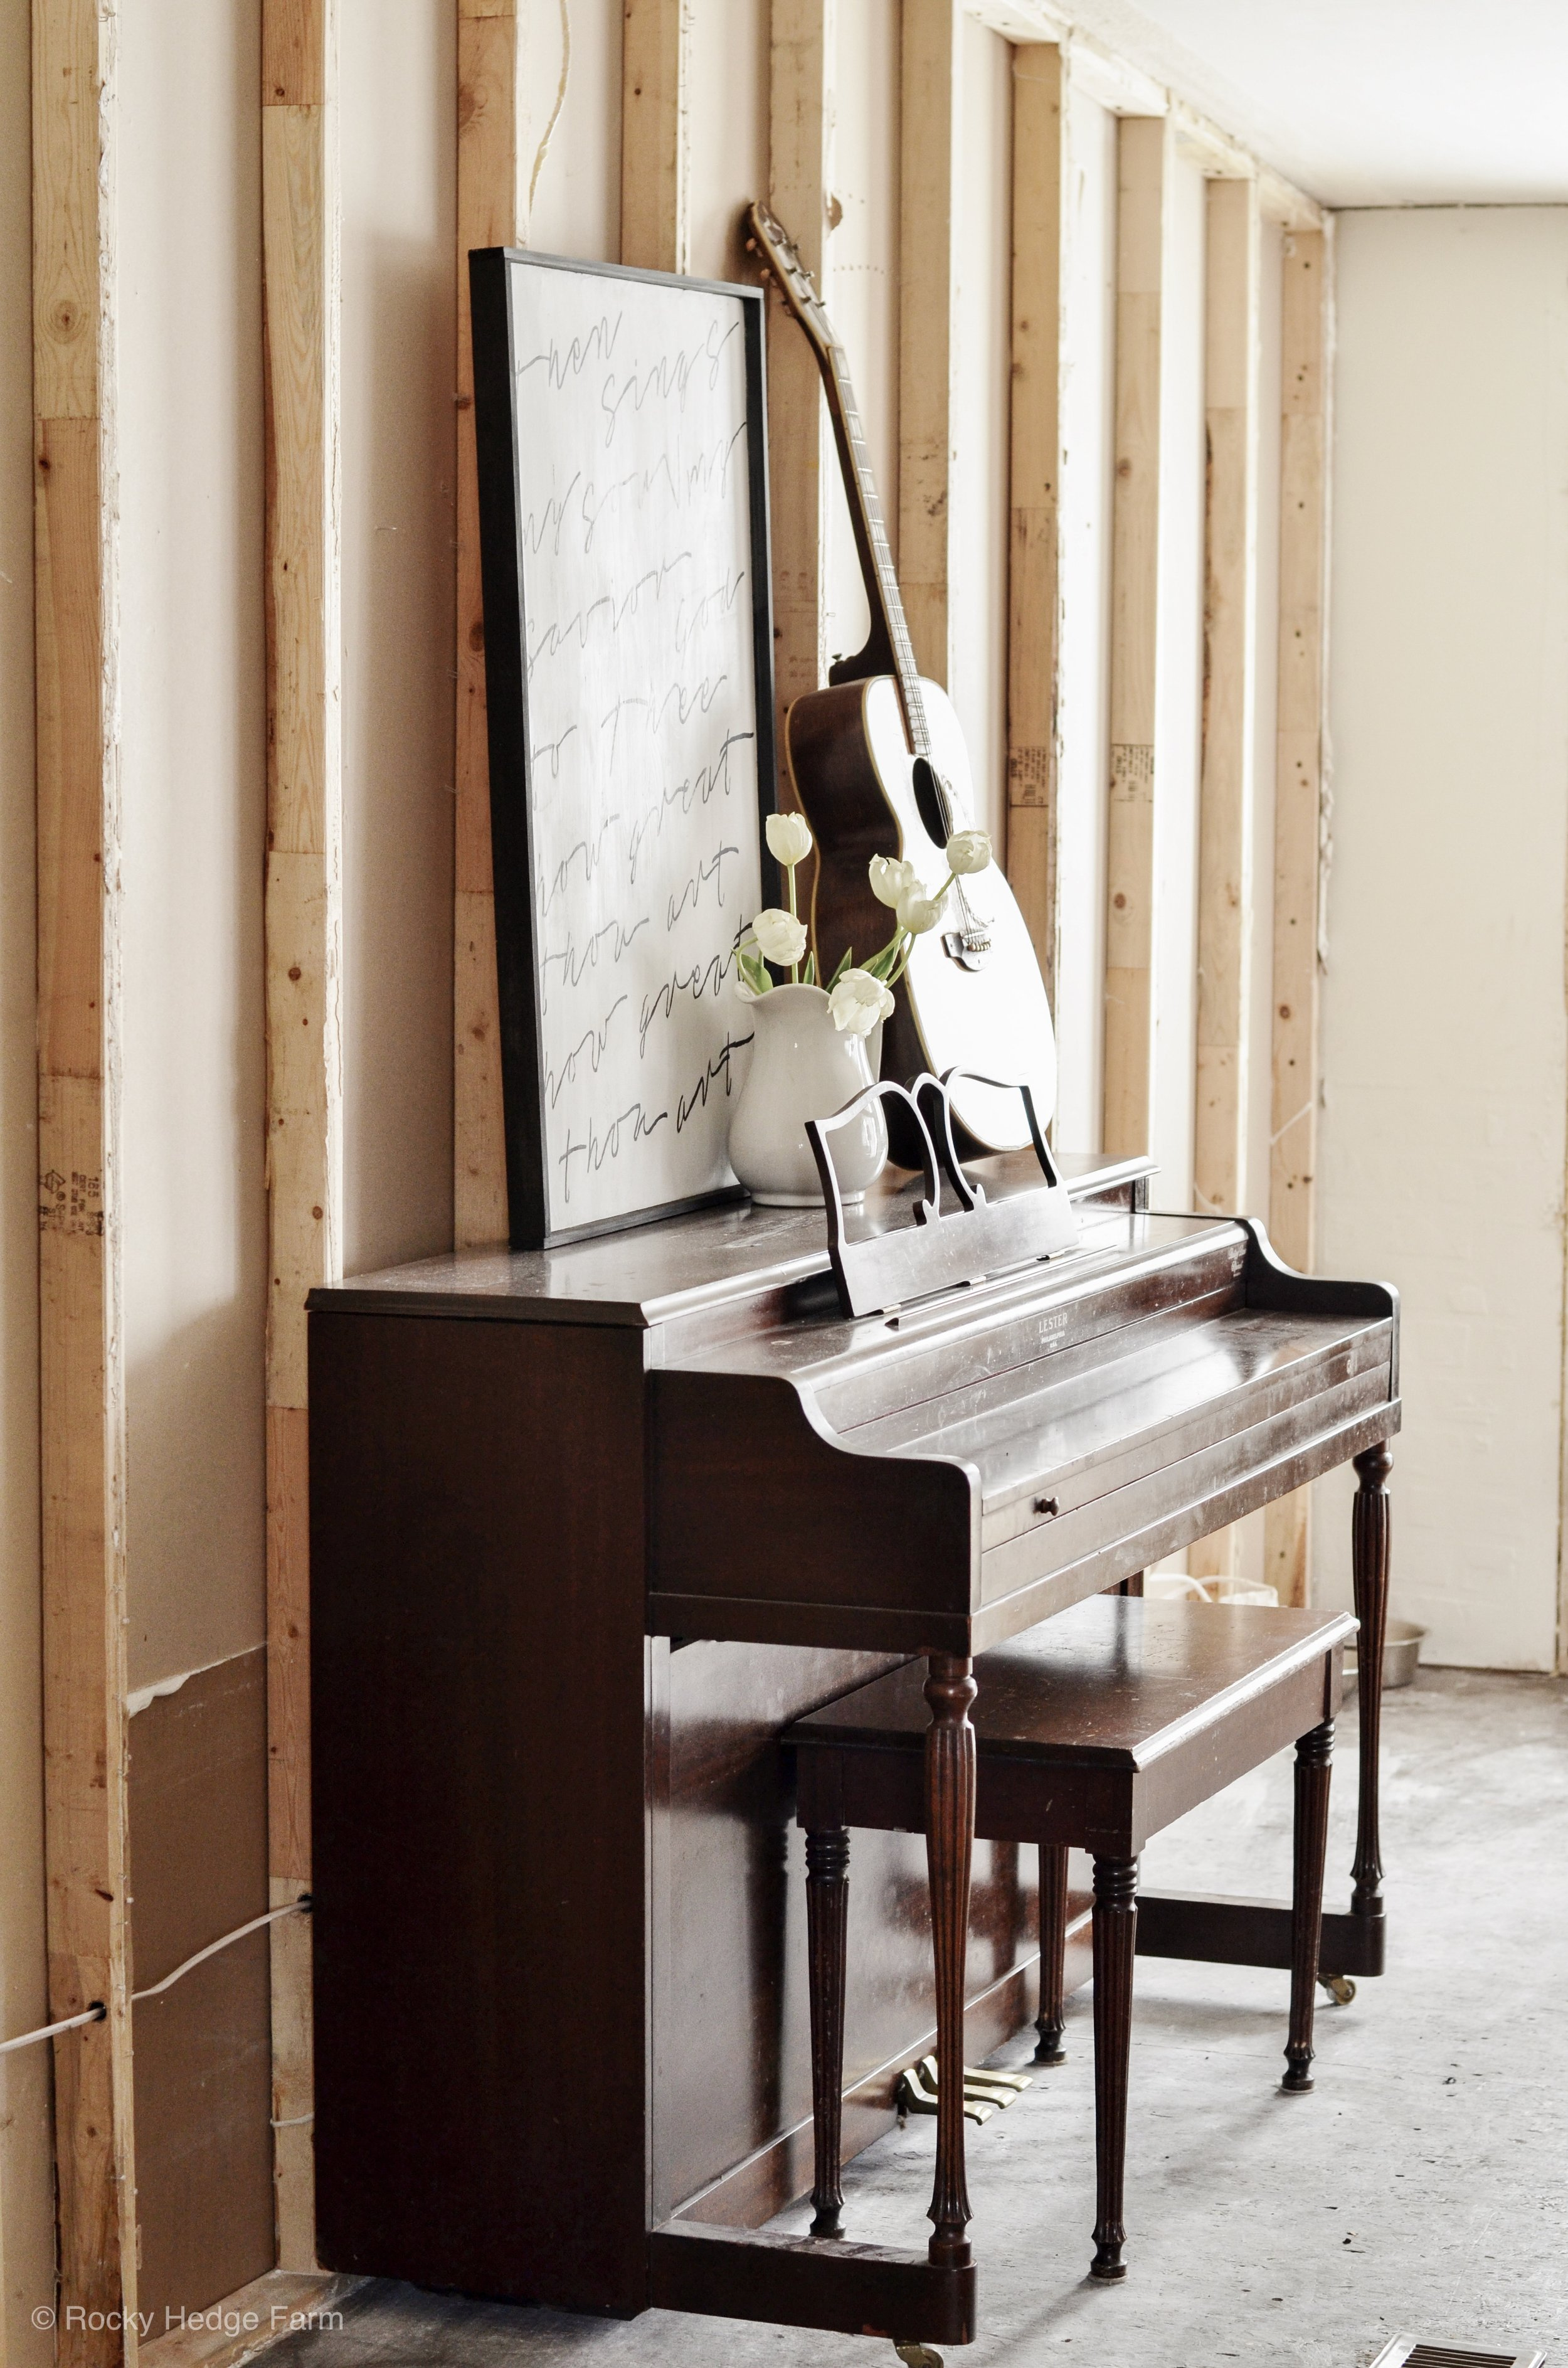 DIY Chalk Painted Piano Before and After Makeover | Rocky Hedge Farm